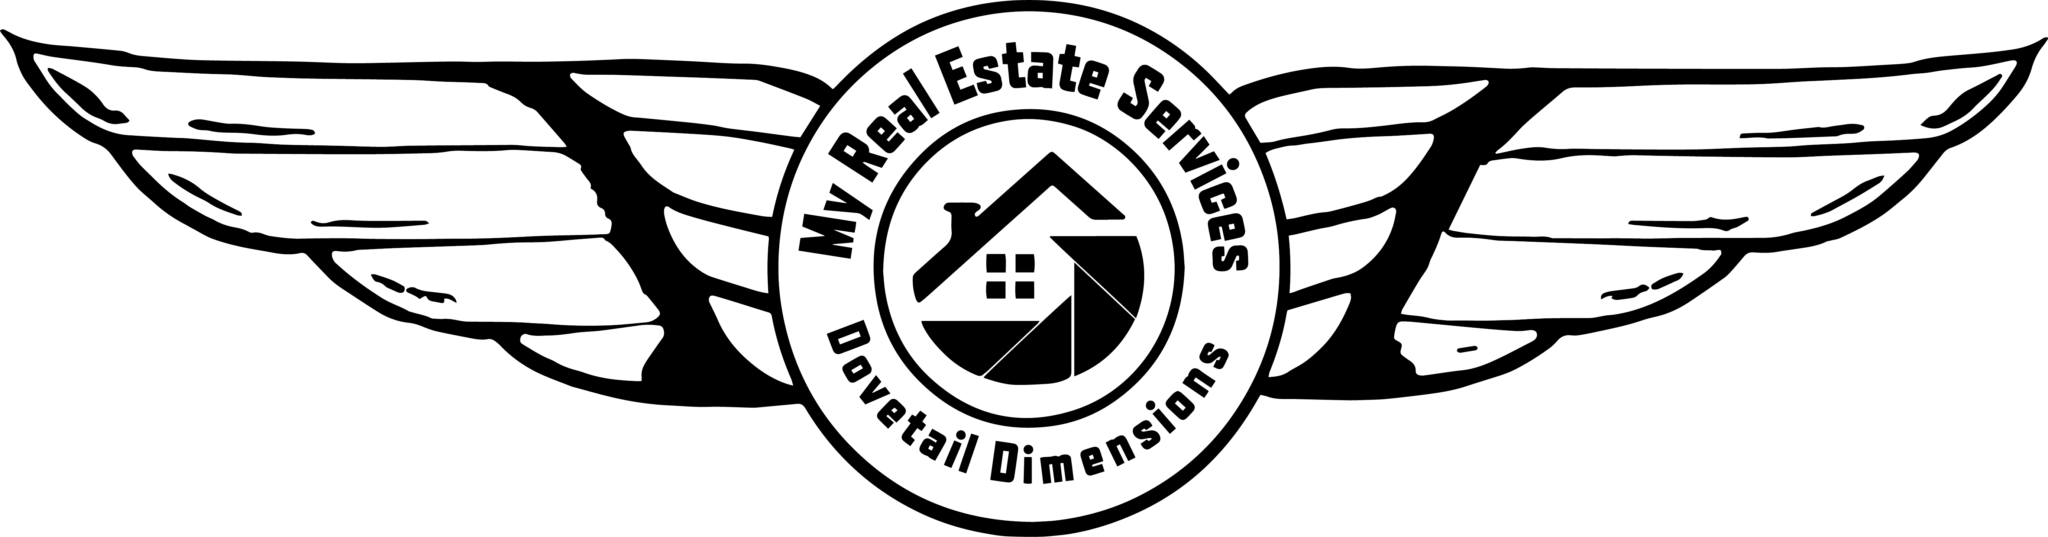 Dime clipart tail. Real estate photography i